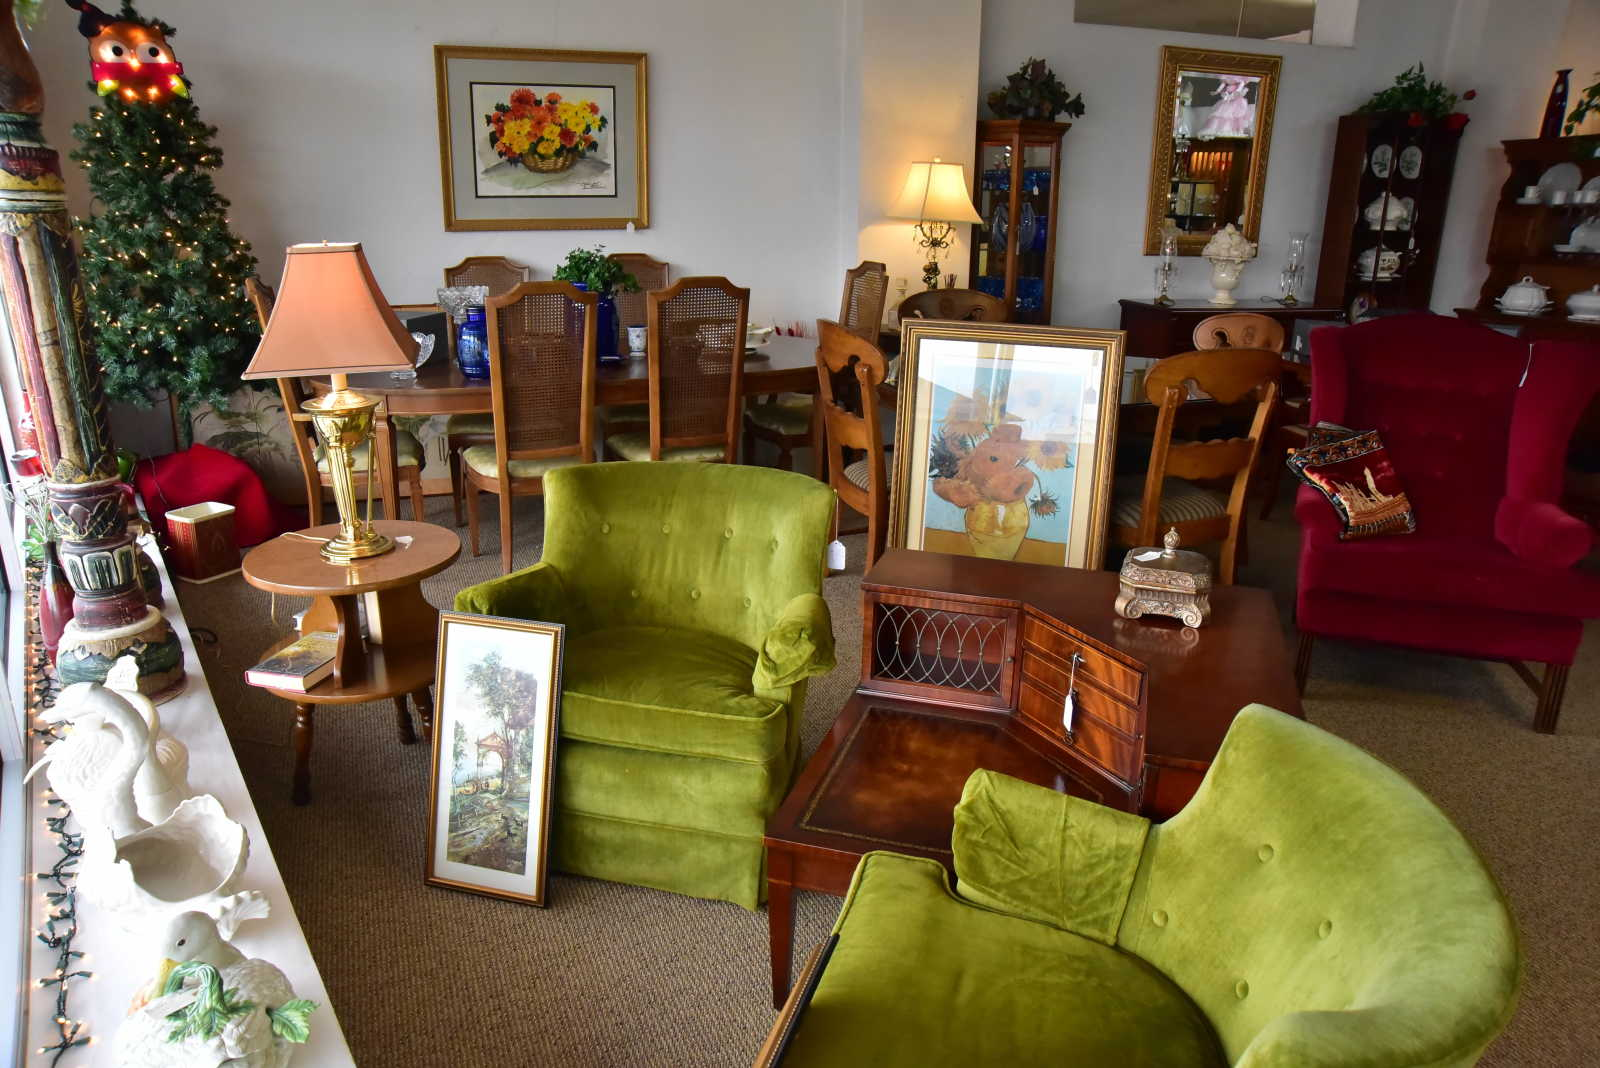 Furniture is displayed at Advance Wise Buys Friday  March 17  2017 in  Advance  Advance Wise Buys is an antique shop along with furniture and  piano. Photo gallery  Advance Wise Buys  4 14 17    Southeast Missourian